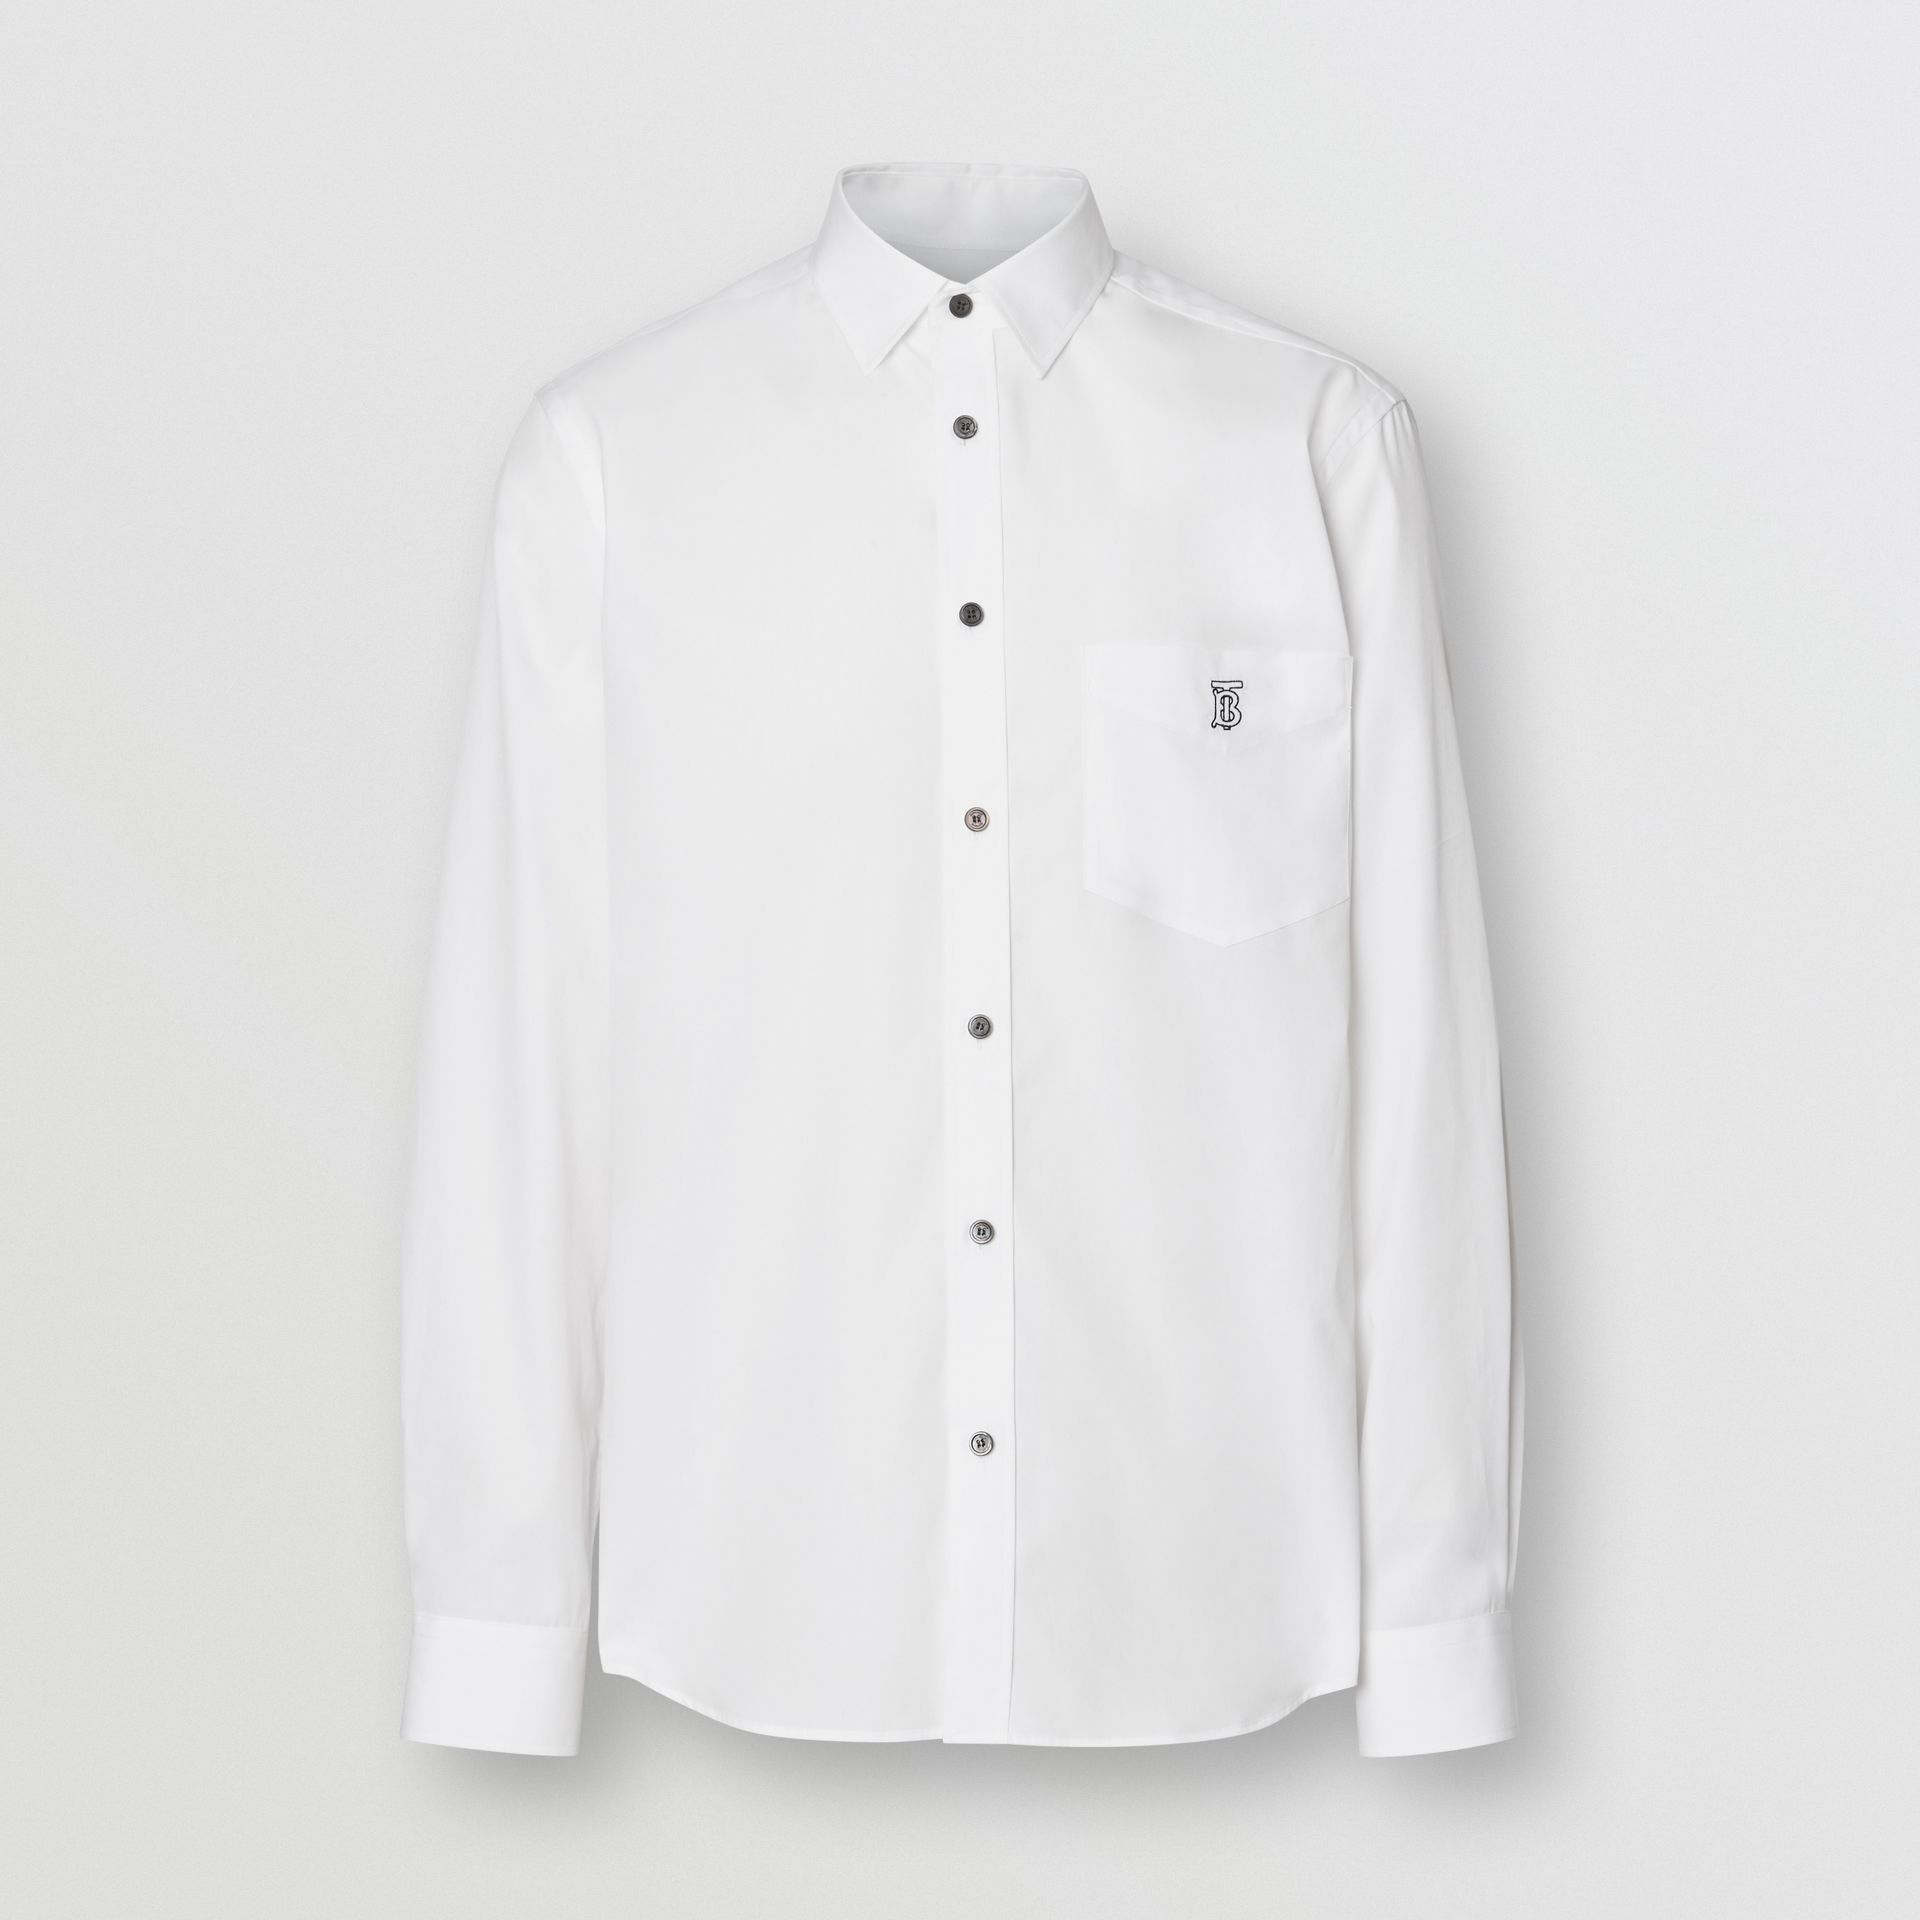 Monogram Motif Stretch Cotton Poplin Shirt in White - Men | Burberry United States - gallery image 3